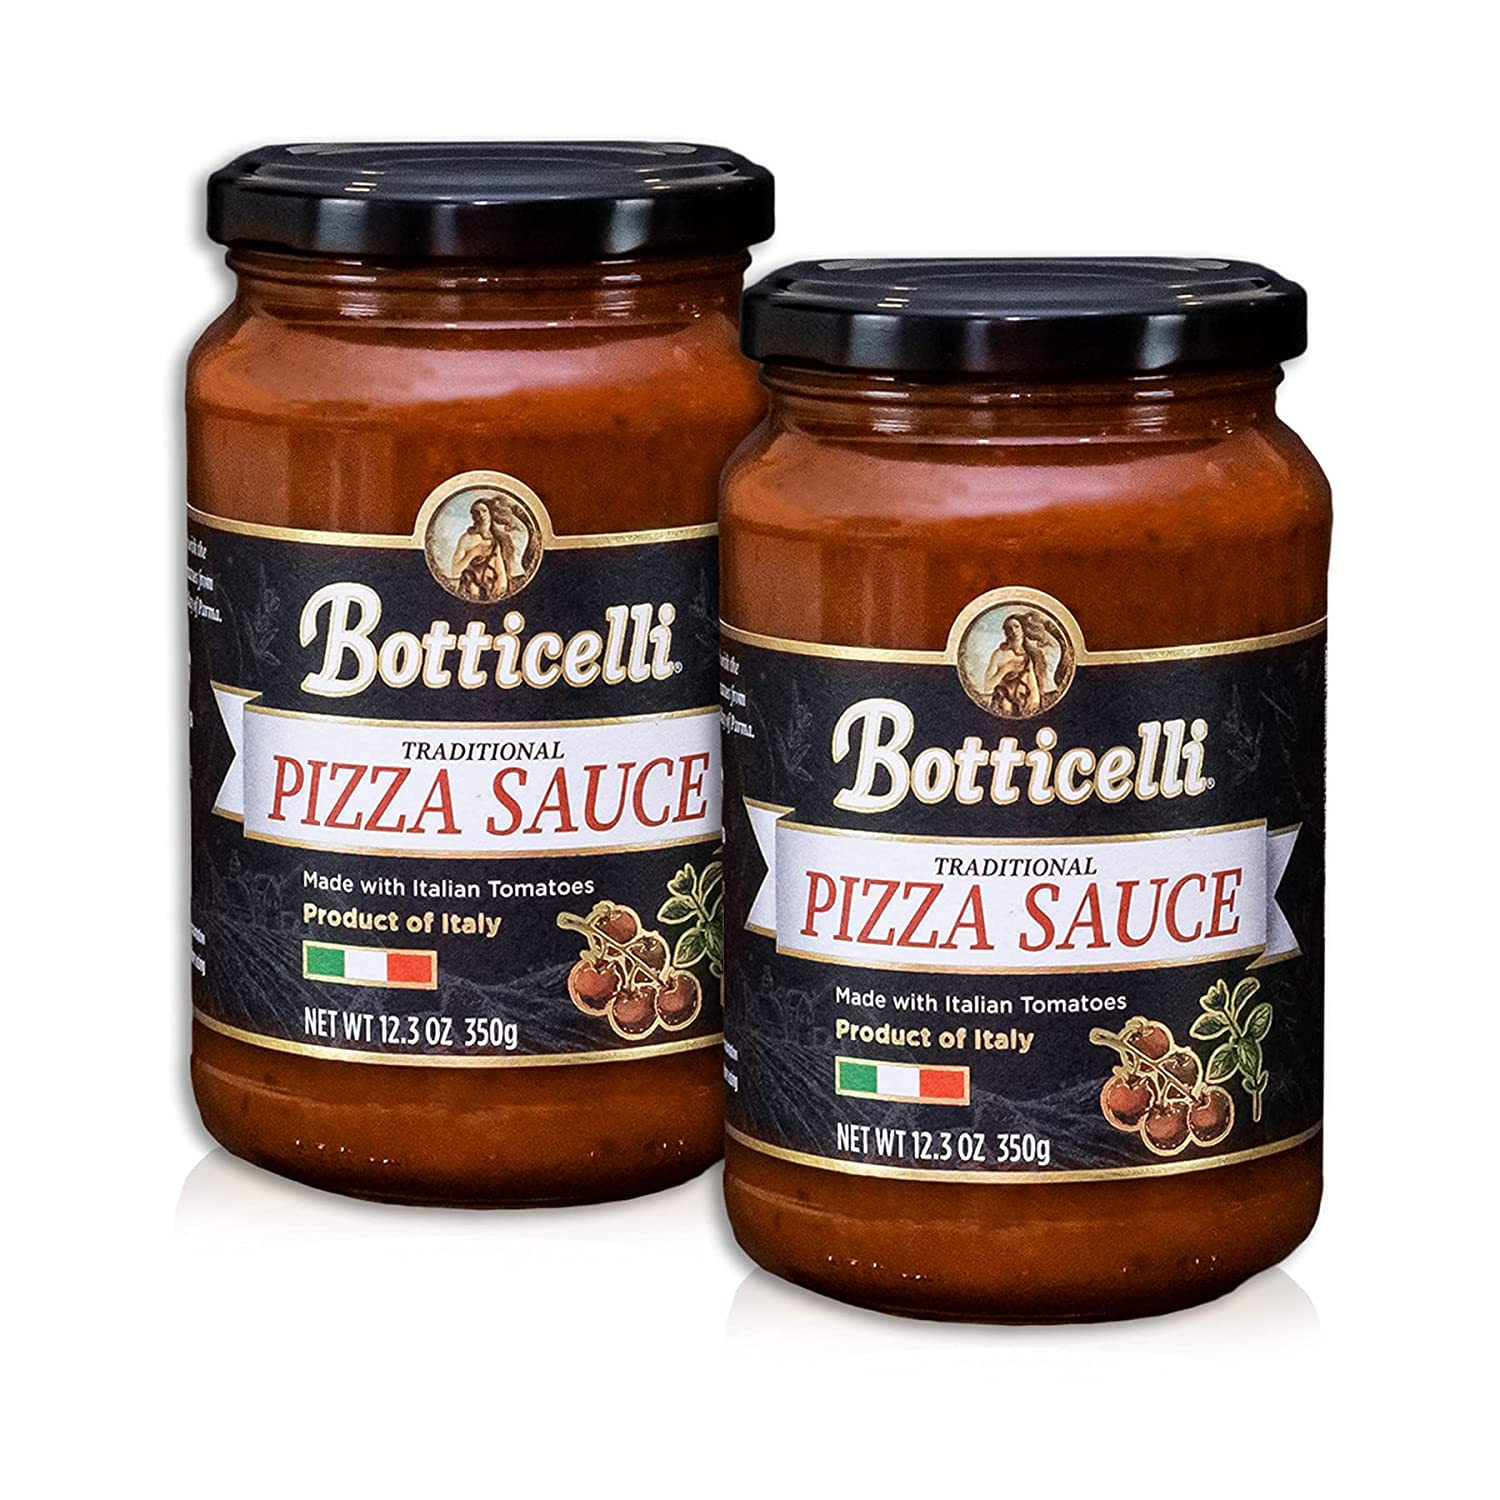 Botticelli Premium Italian Pizza Sauce for Authentic Italian Taste - (Pack of 2) - Whole30 Approved - Made in Italy, Low Carb, Low Sugar, Keto-Friendly Premium Italian Pizza Sauce - 12.3oz